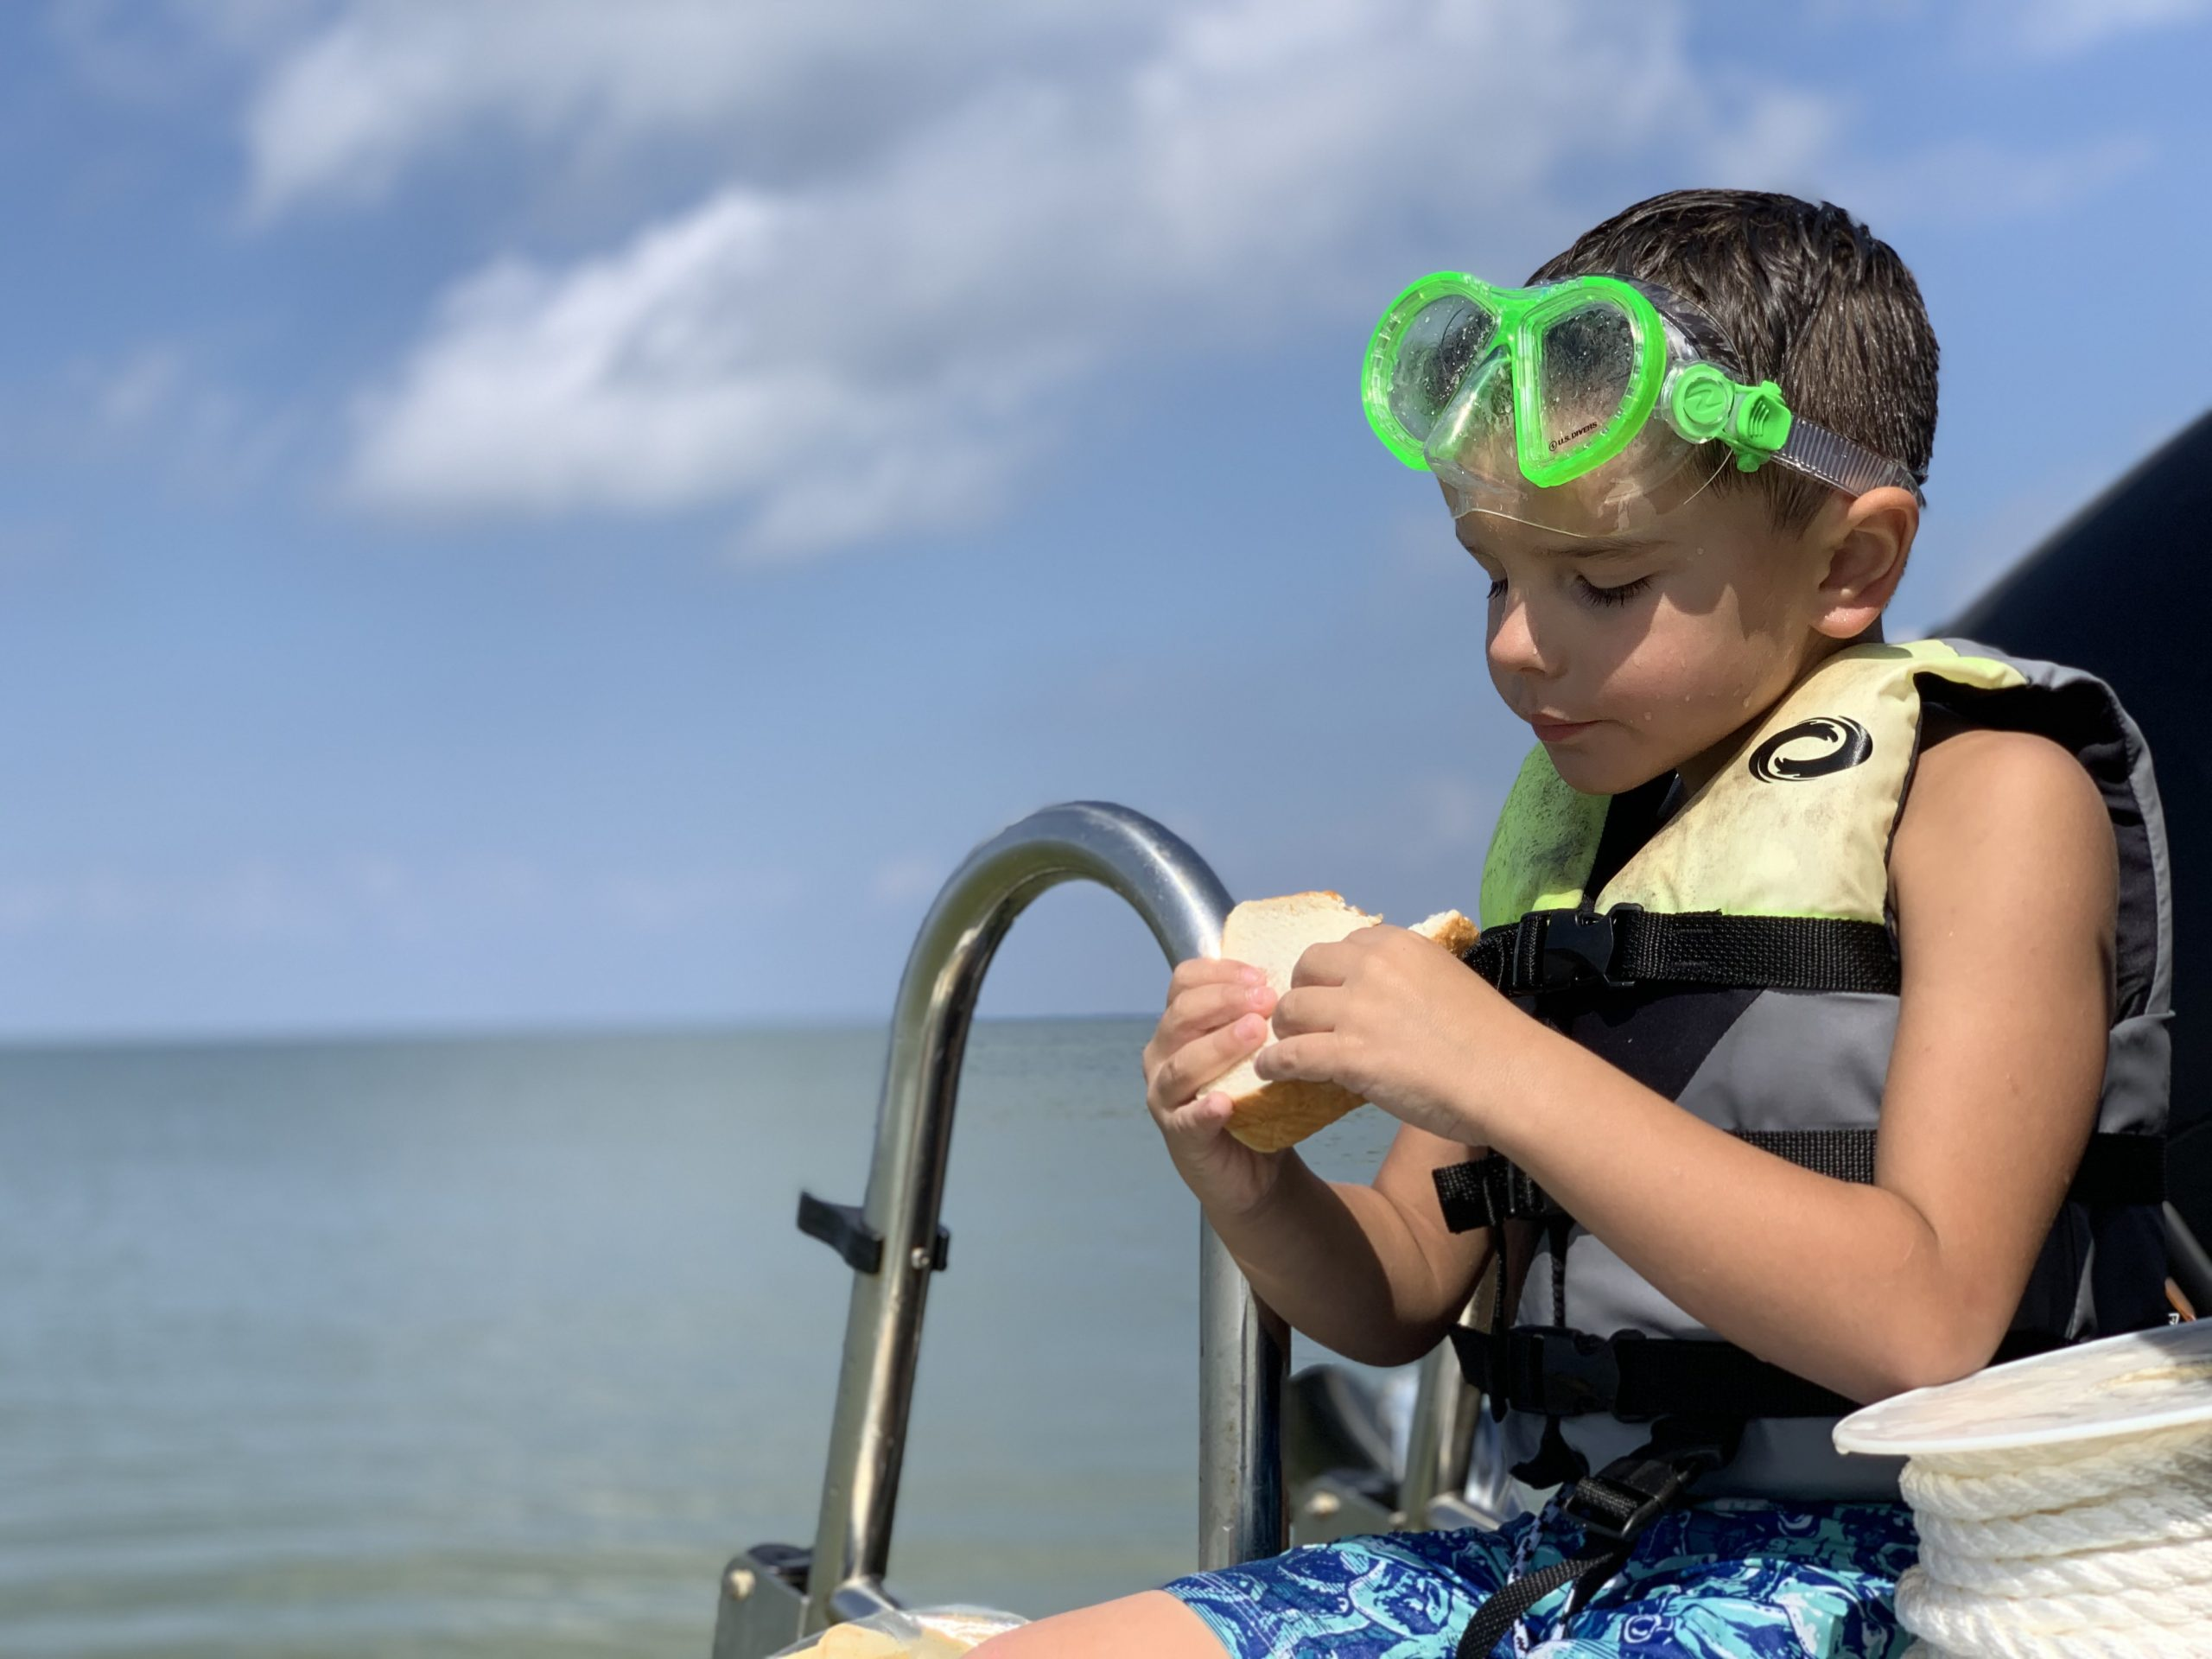 Child on a boat eating